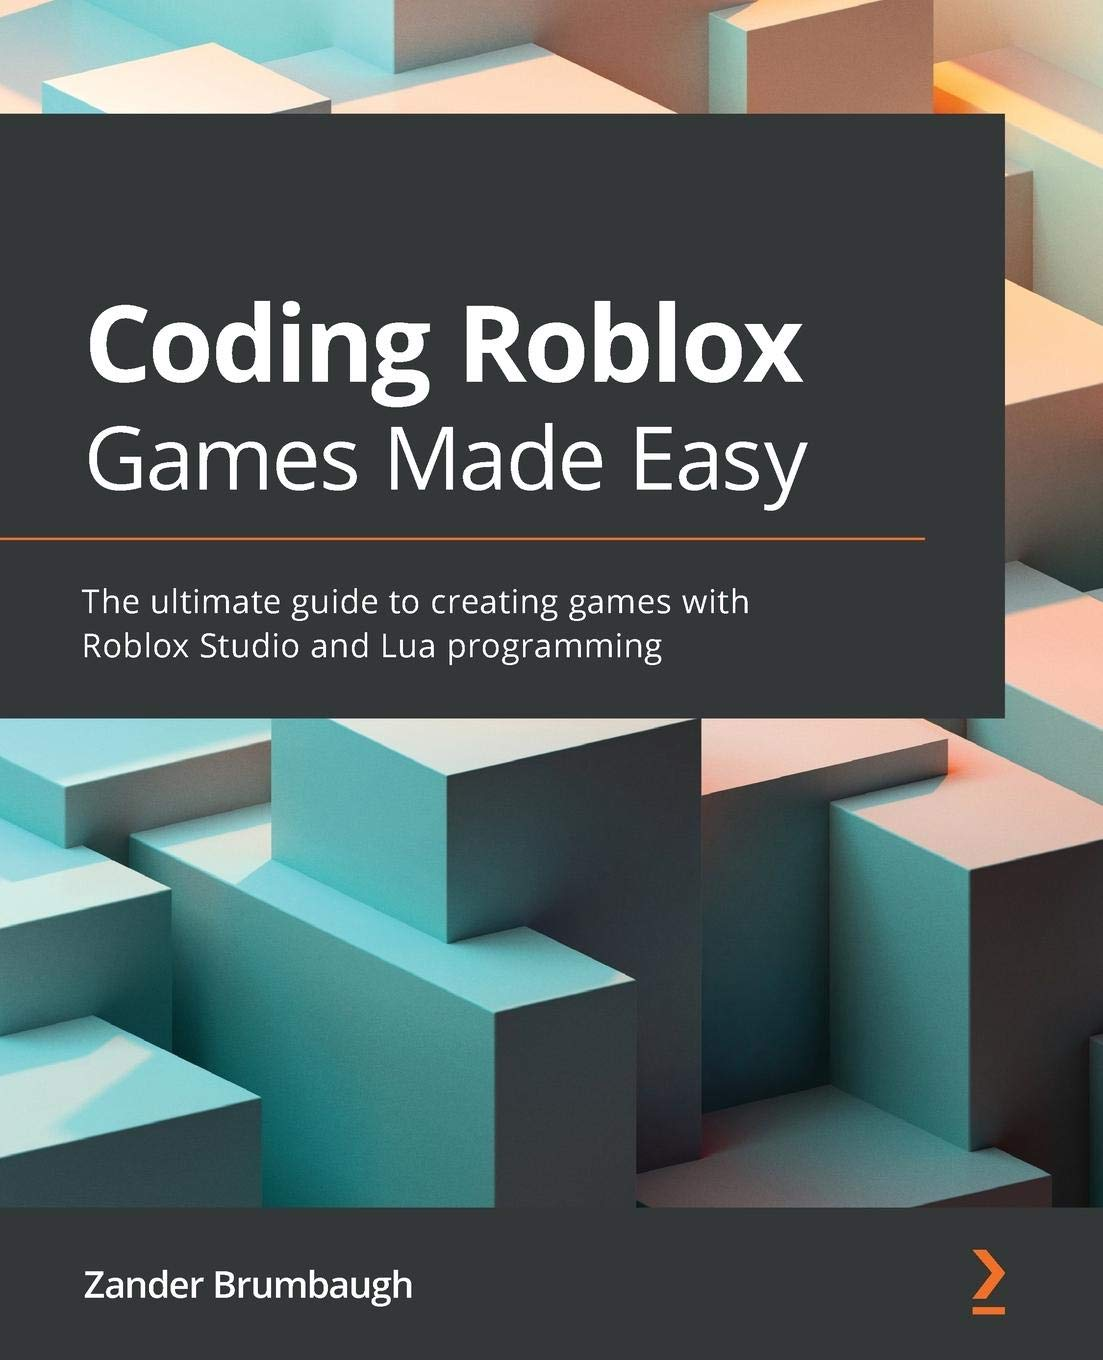 Coding Roblox Games Made Easy: The ultimate guide to creating games with Roblox Studio and Lua programming